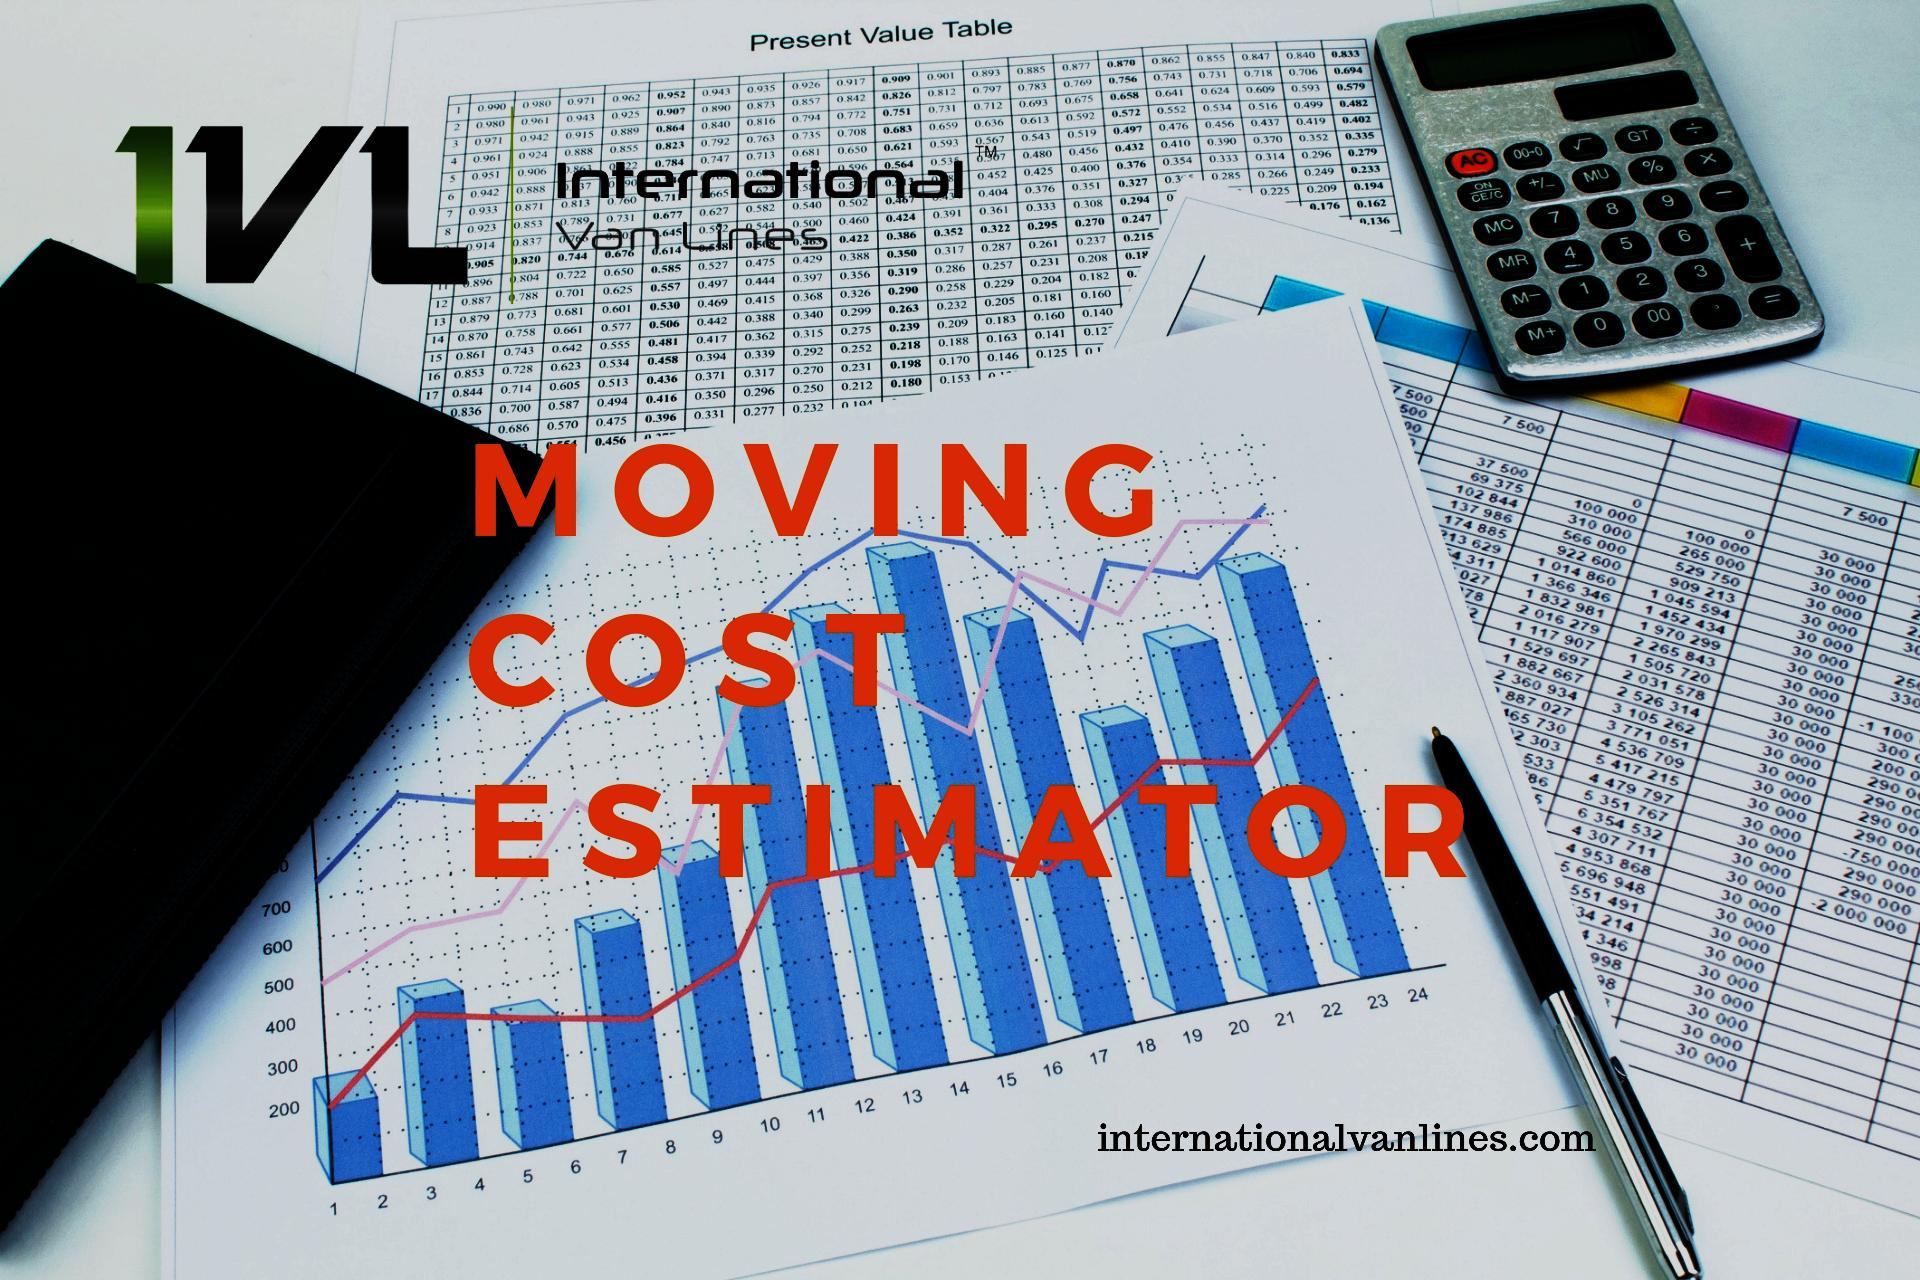 Moving Cost Estimator